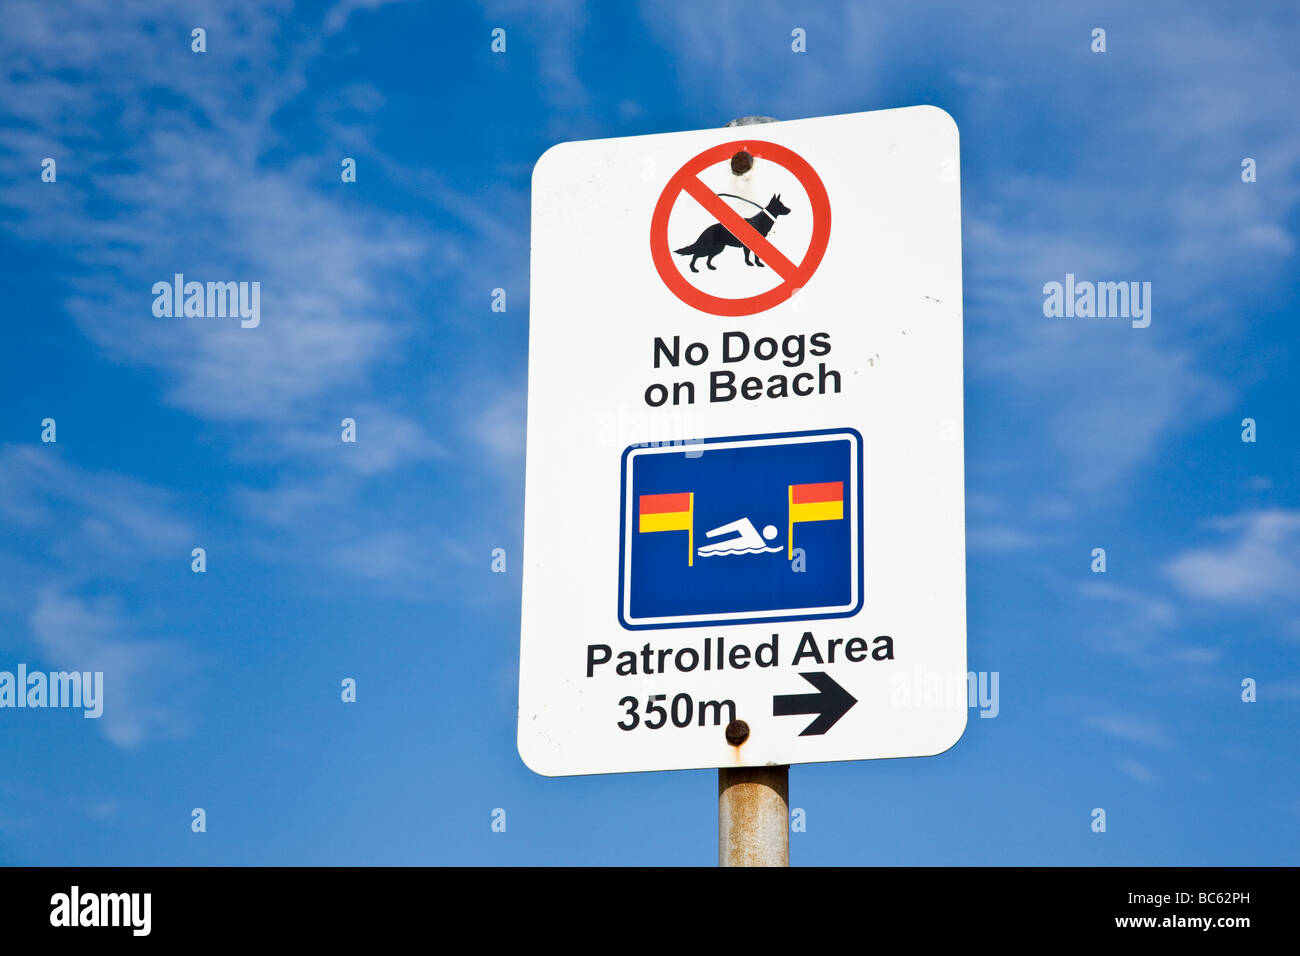 No Dogs on beach warning sign at Nobbys Beach Newcastle NSW Australia Stock Photo